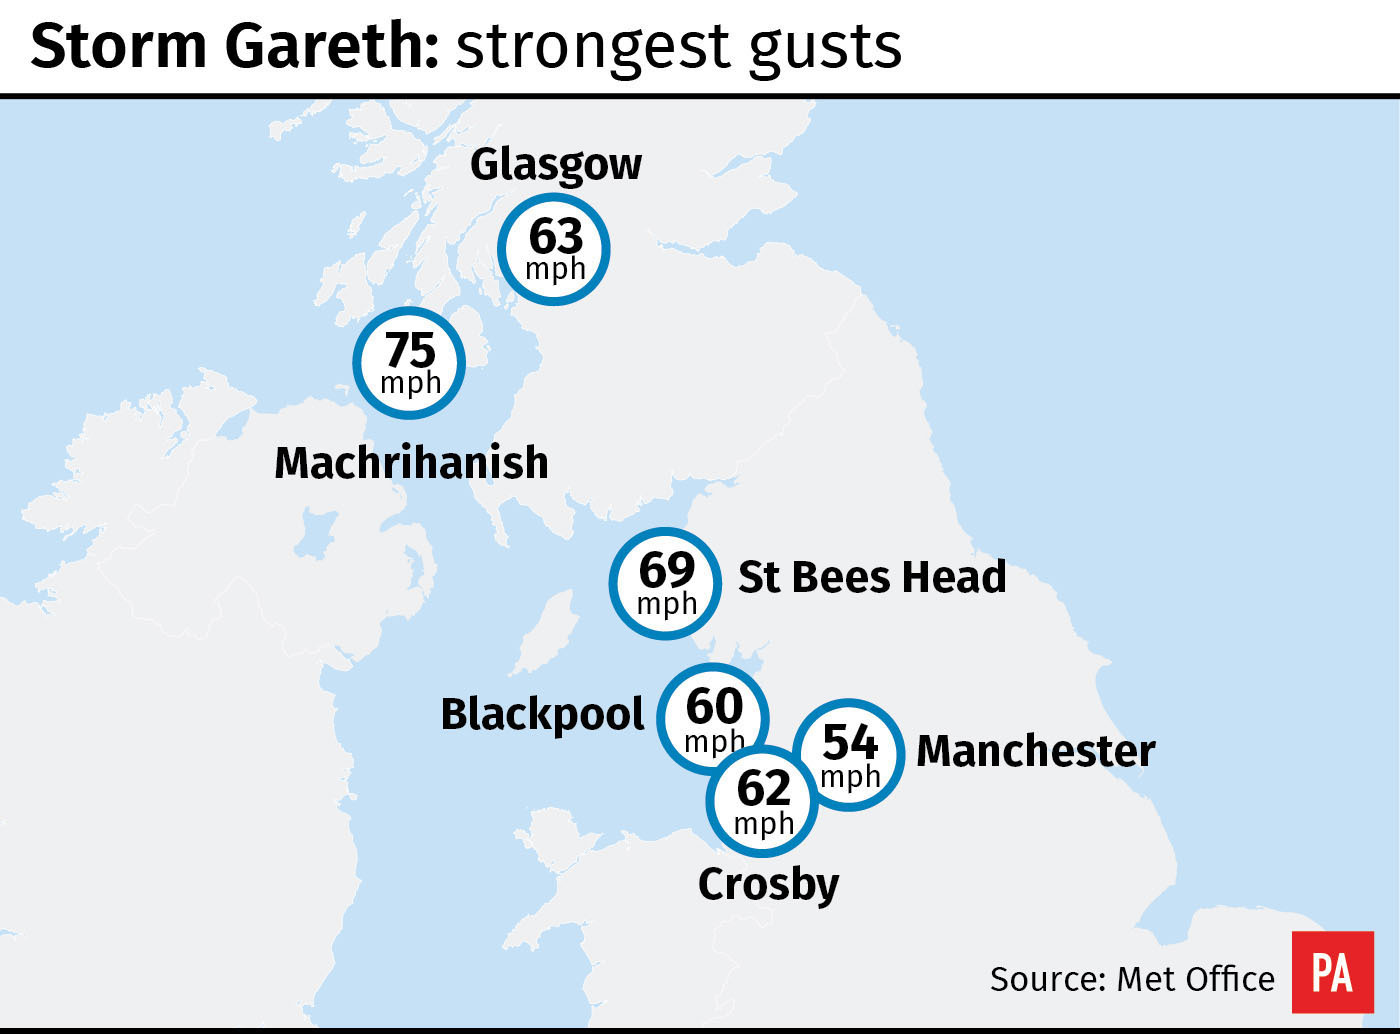 Storm Gareth strongest gusts